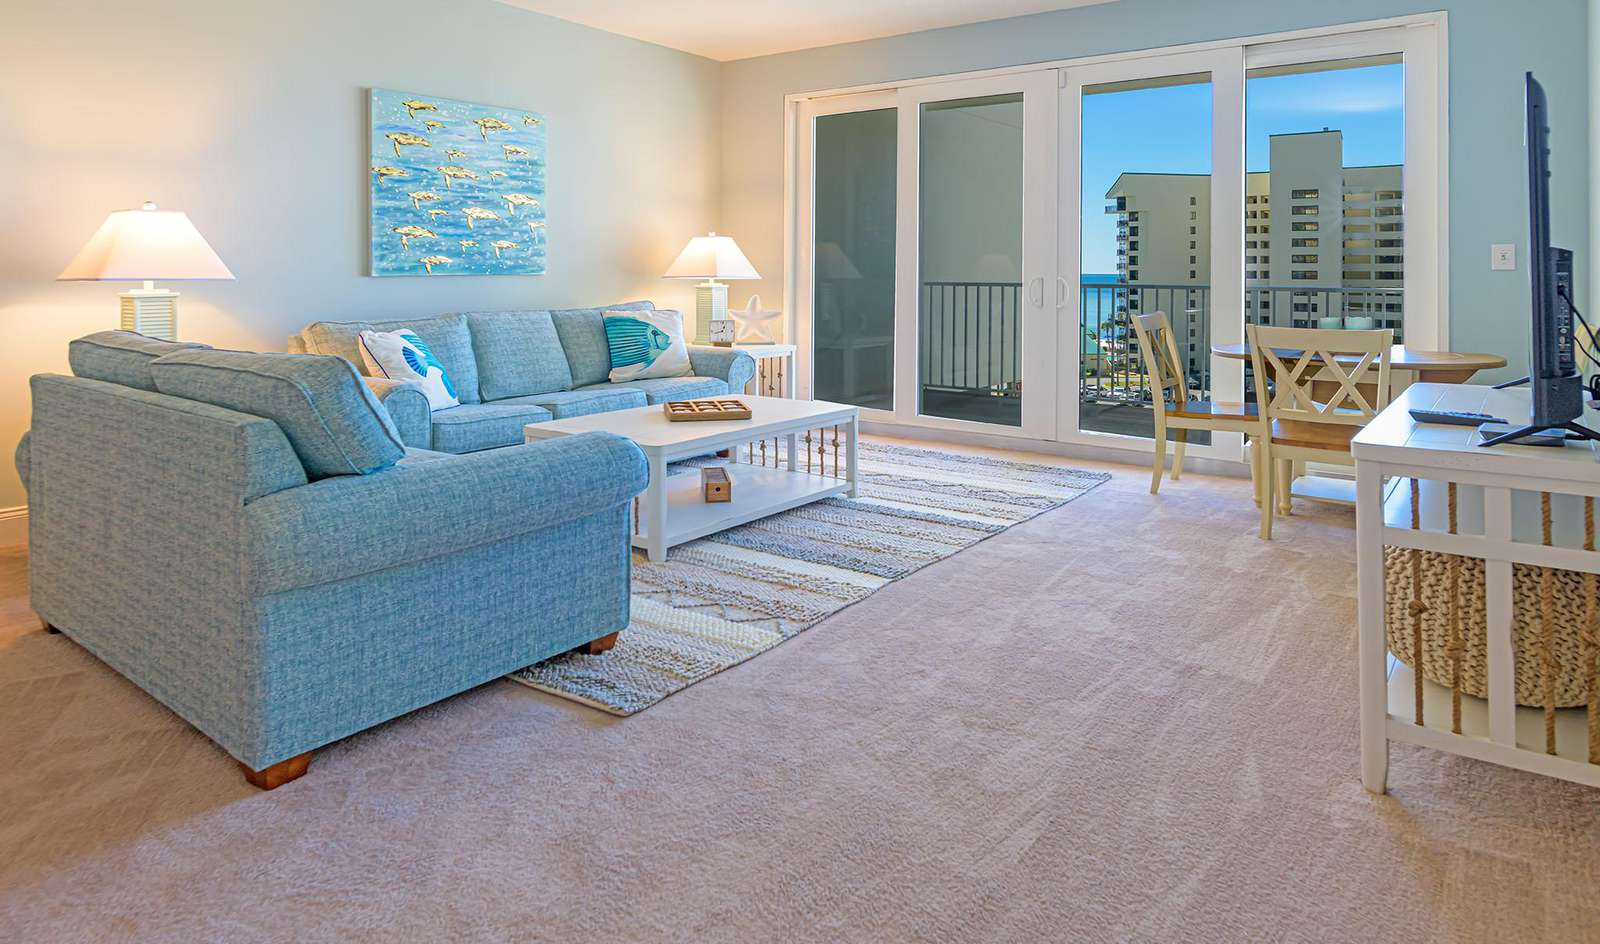 The living area also includes sleeper sofa and balcony access!